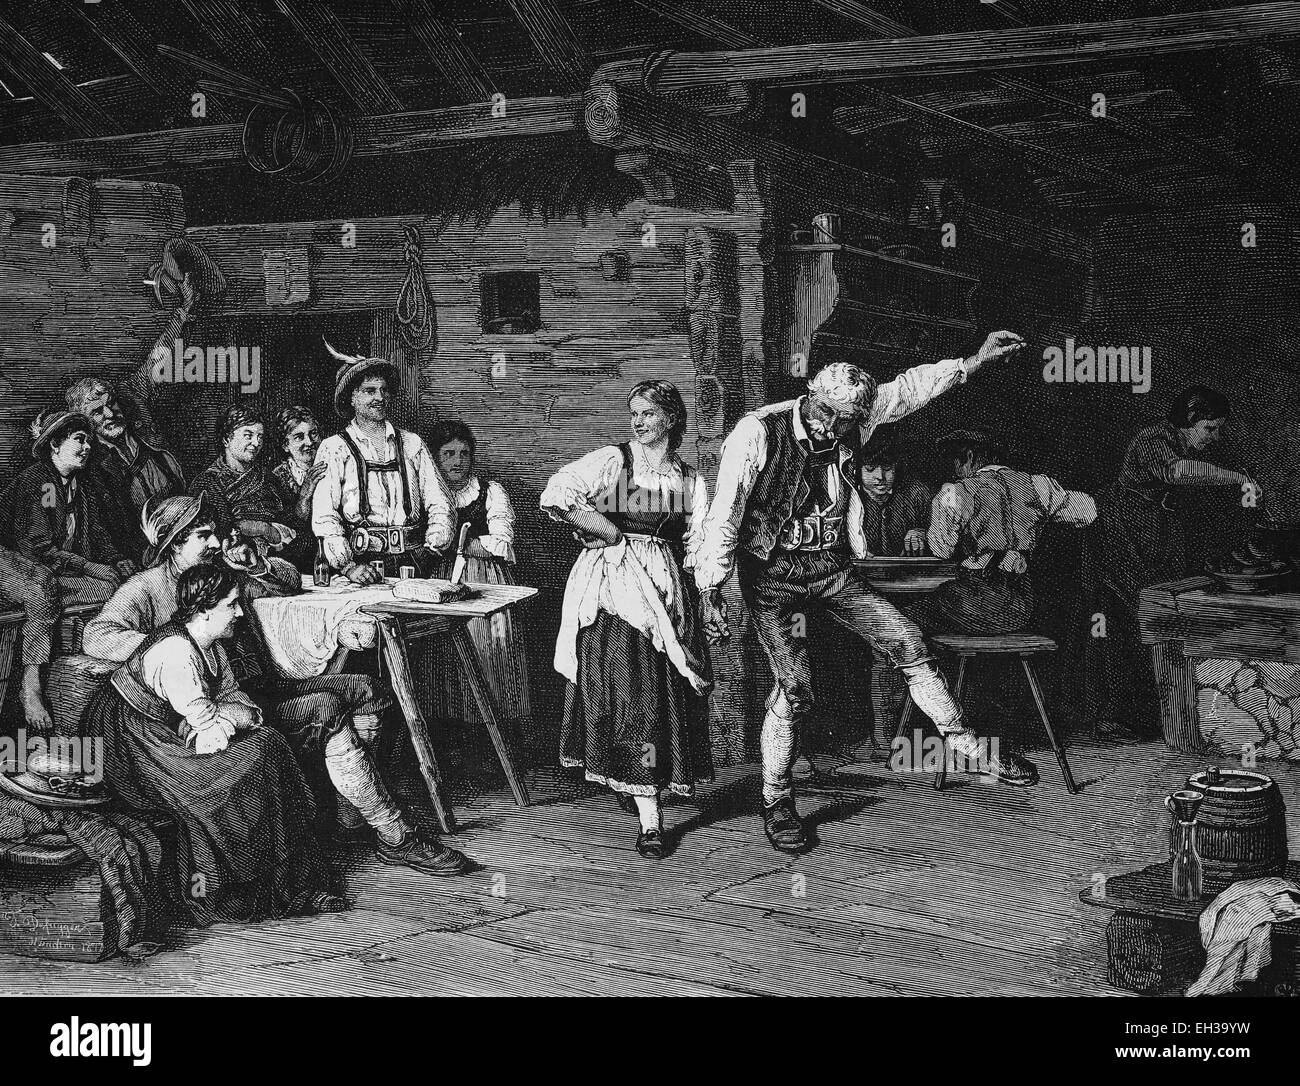 Dance at the mountain hut in the evening, wood engraving, c 1880 - Stock Image